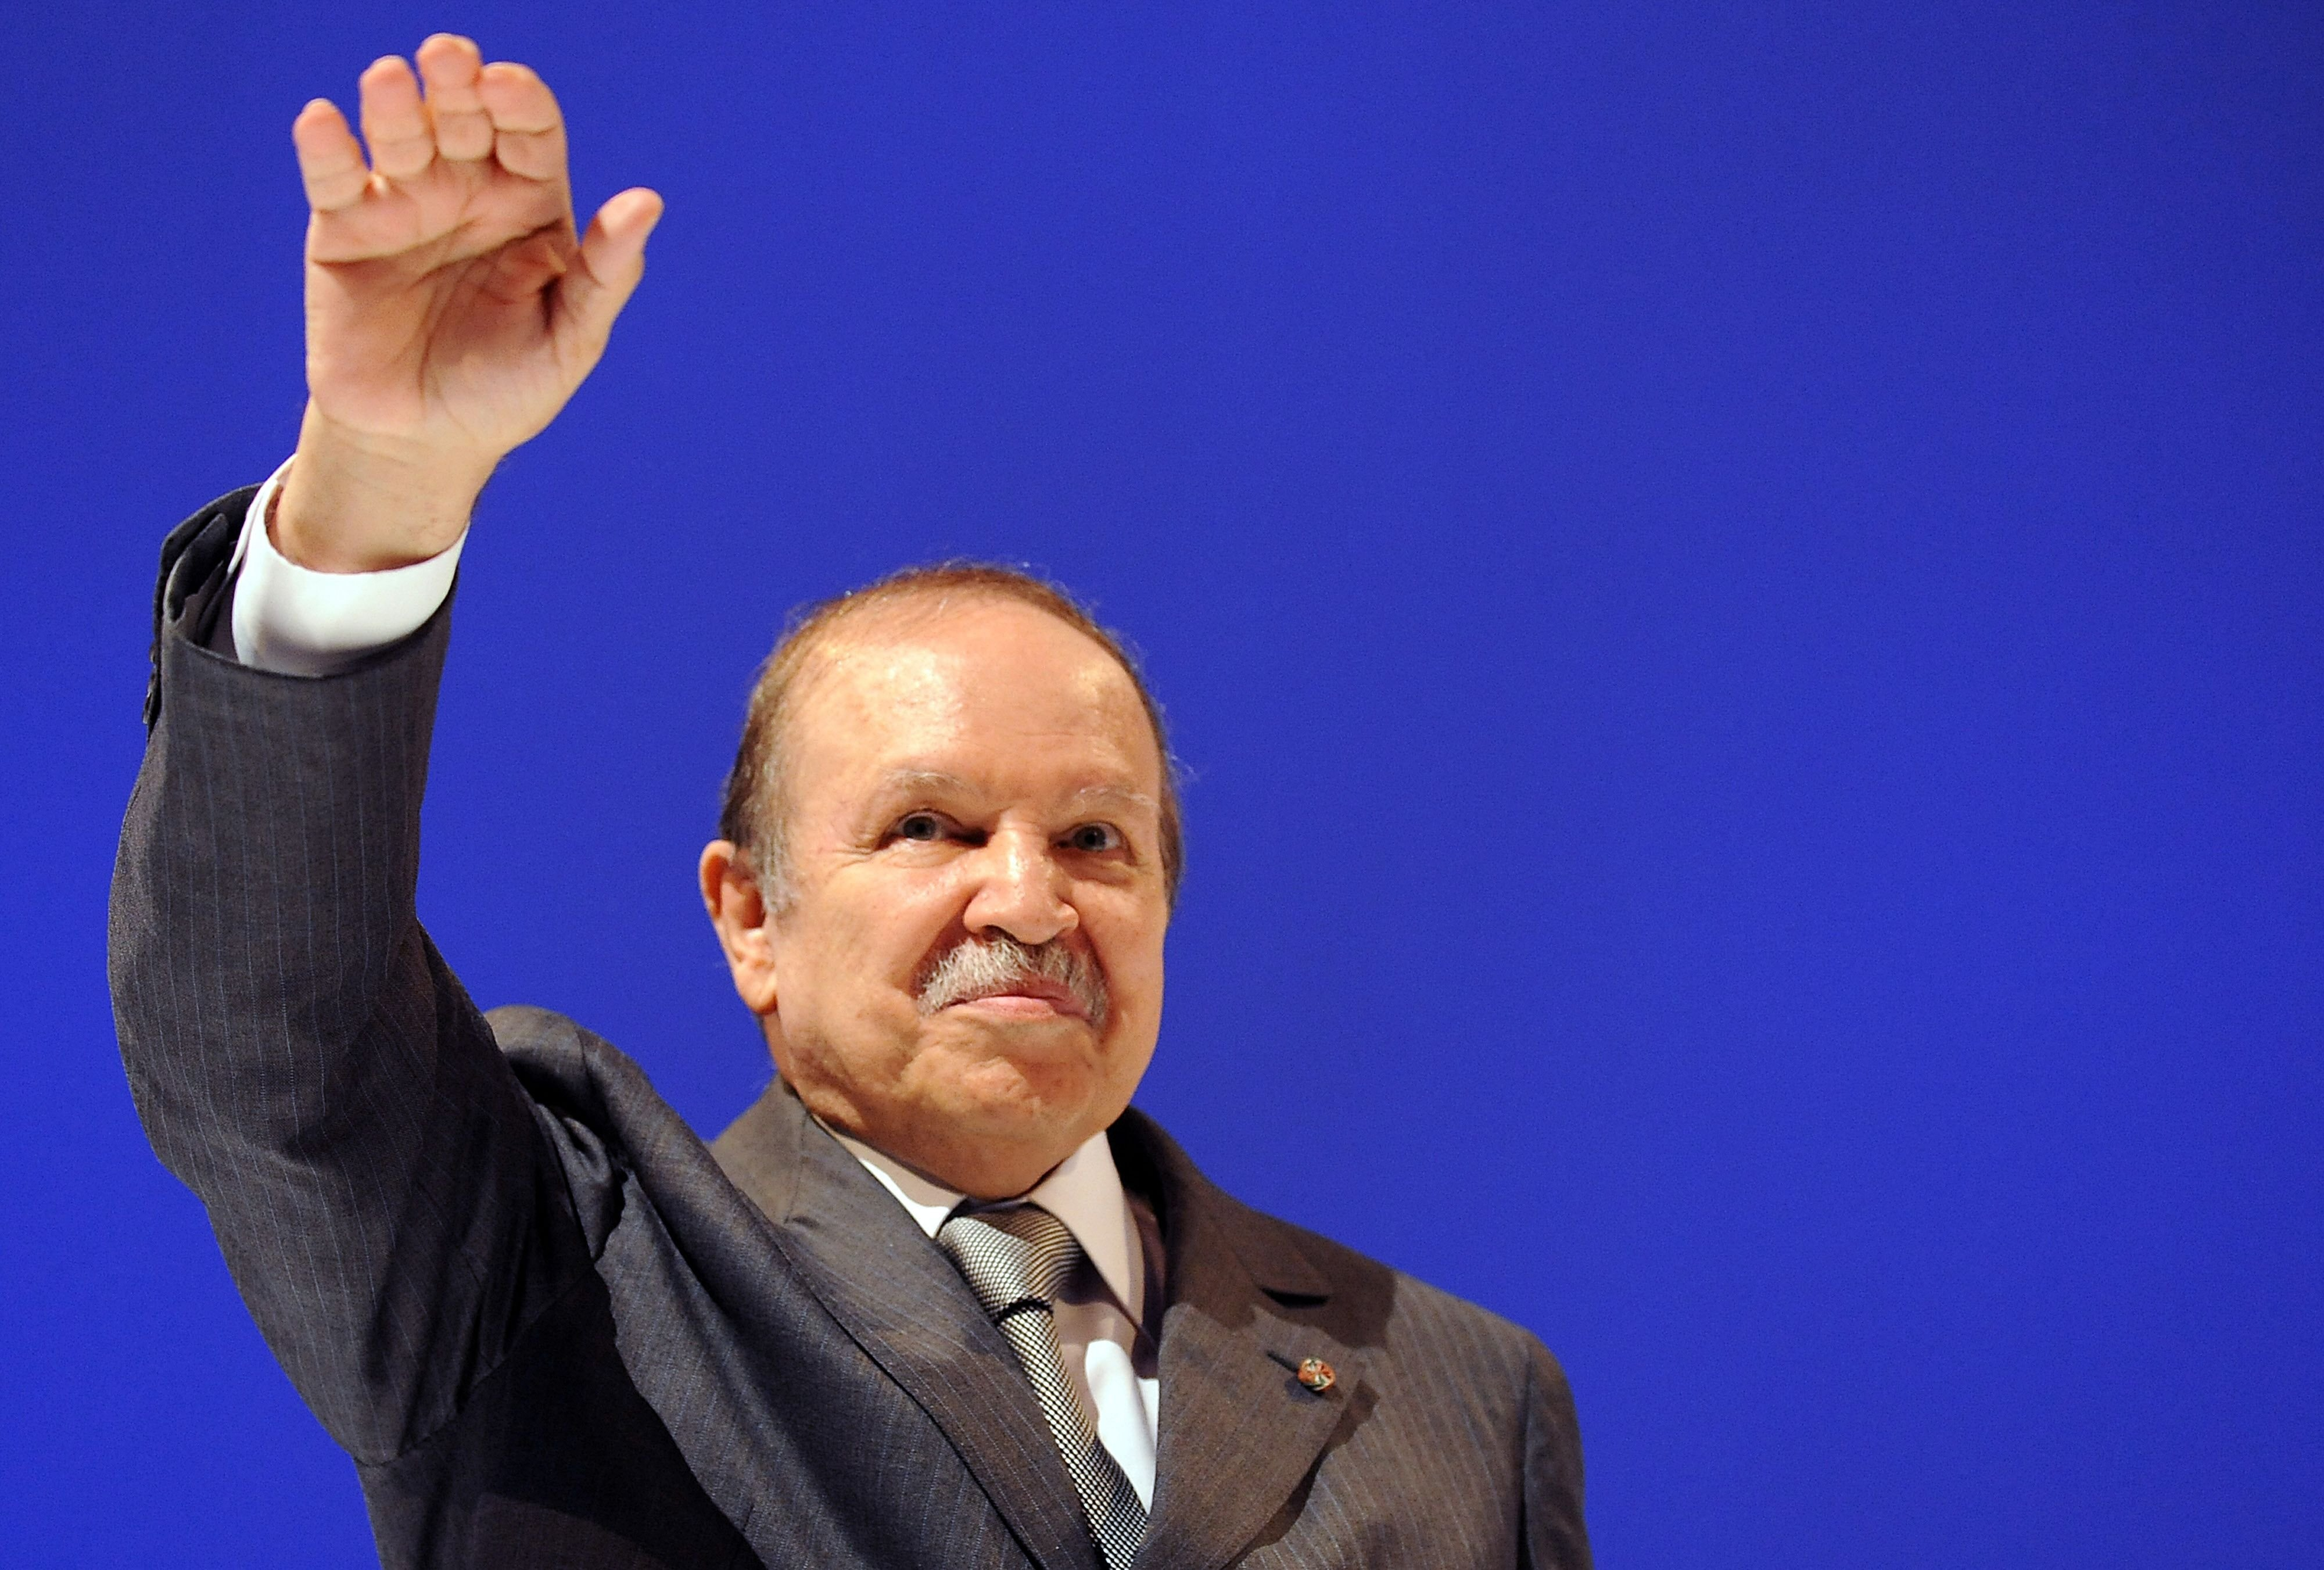 Ex-Algerian president Bouteflika, ousted amid protests, dies at 84